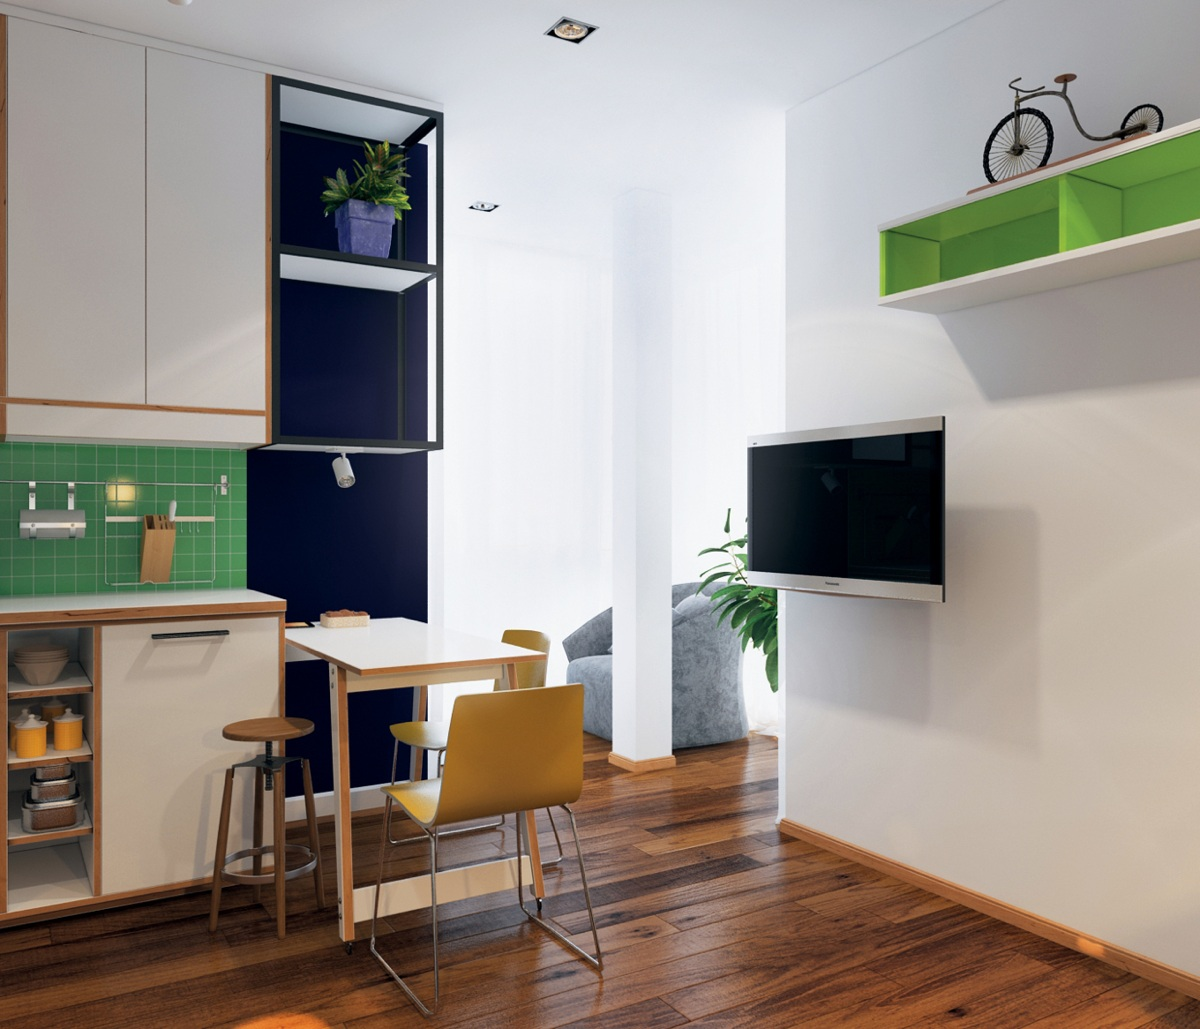 Apartments For: Homes Under 400 Square Feet: 5 Apartments That Squeeze